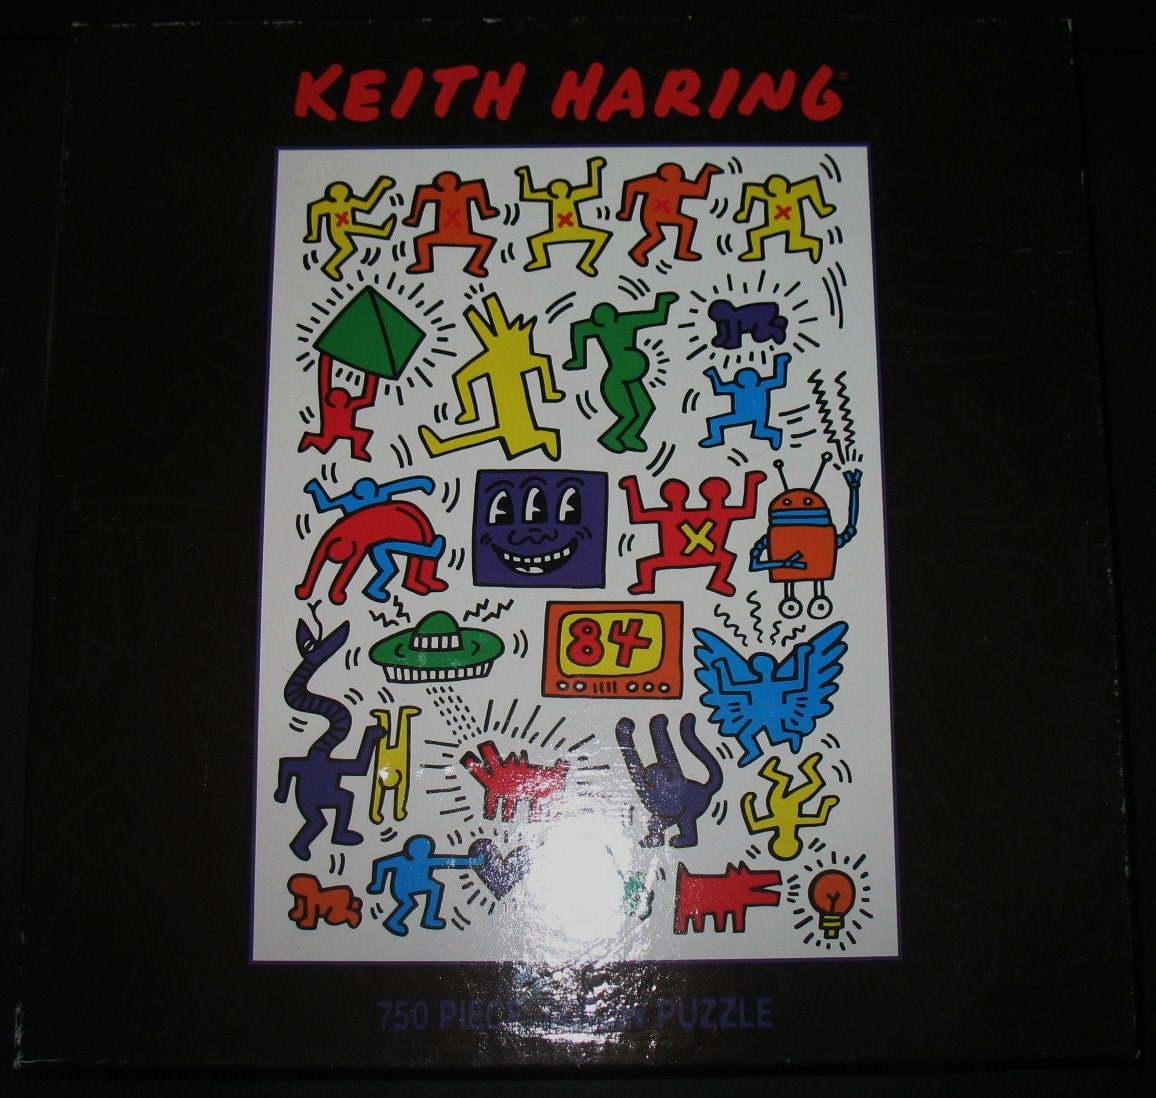 Keith Haring Pop Artist Sealed 750 Piece Jigsaw Puzzle From a 1983 Exhibition Poster